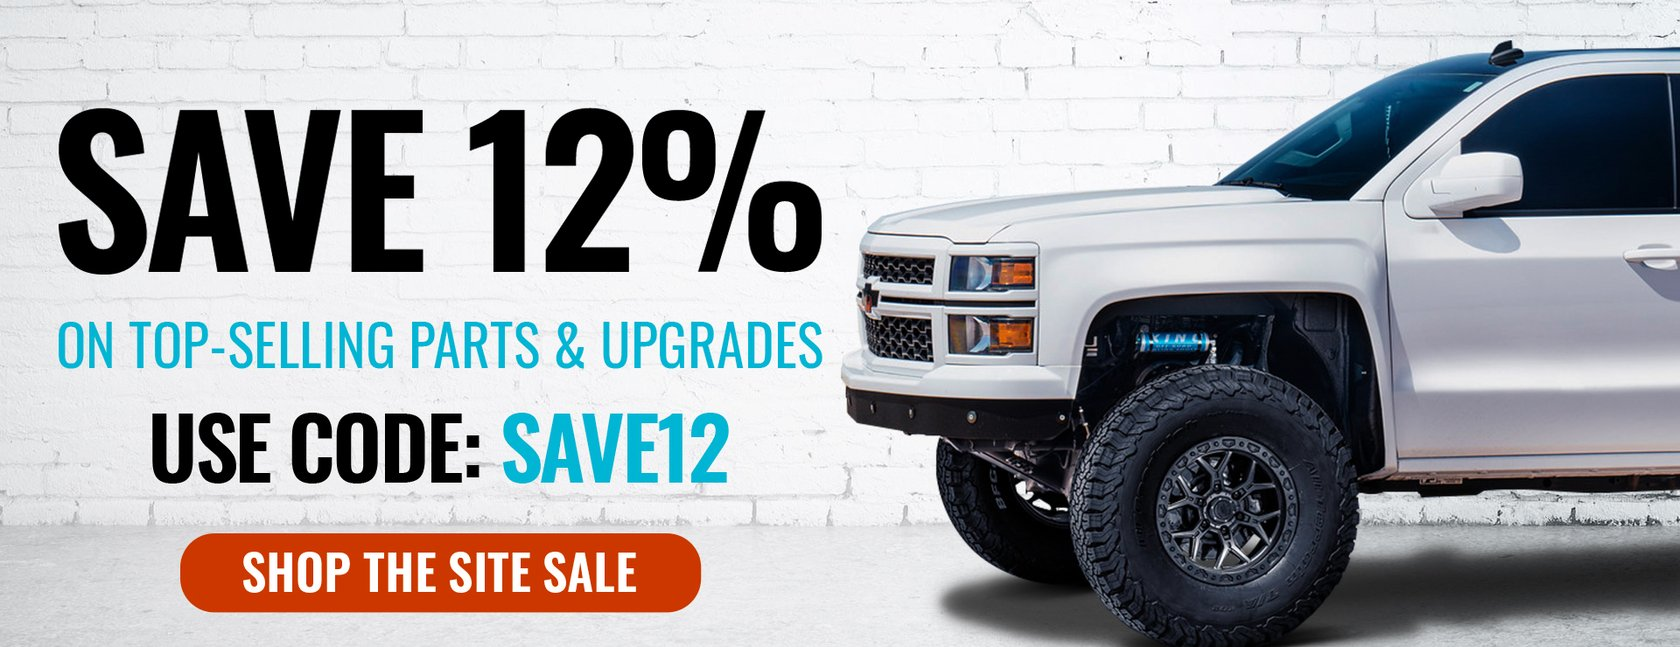 Shop the site sale - AutoAnything